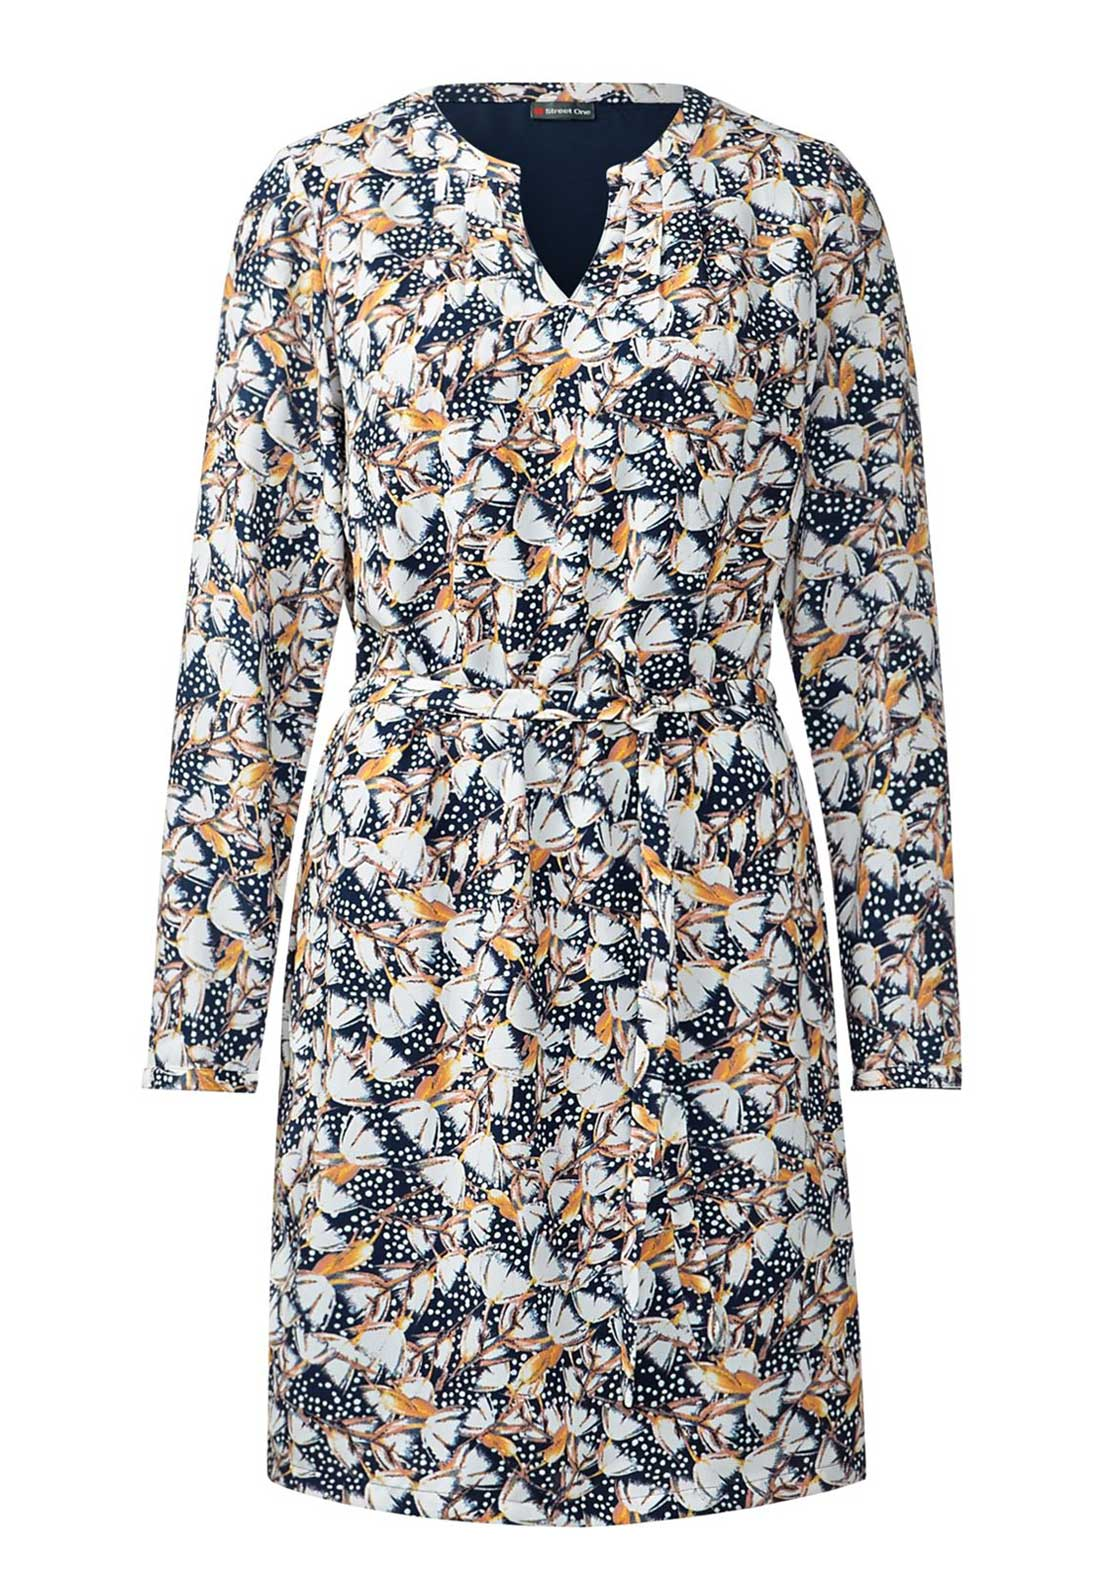 Street One Floral Print Long Sleeve Tunic Dress, Multi-Coloured